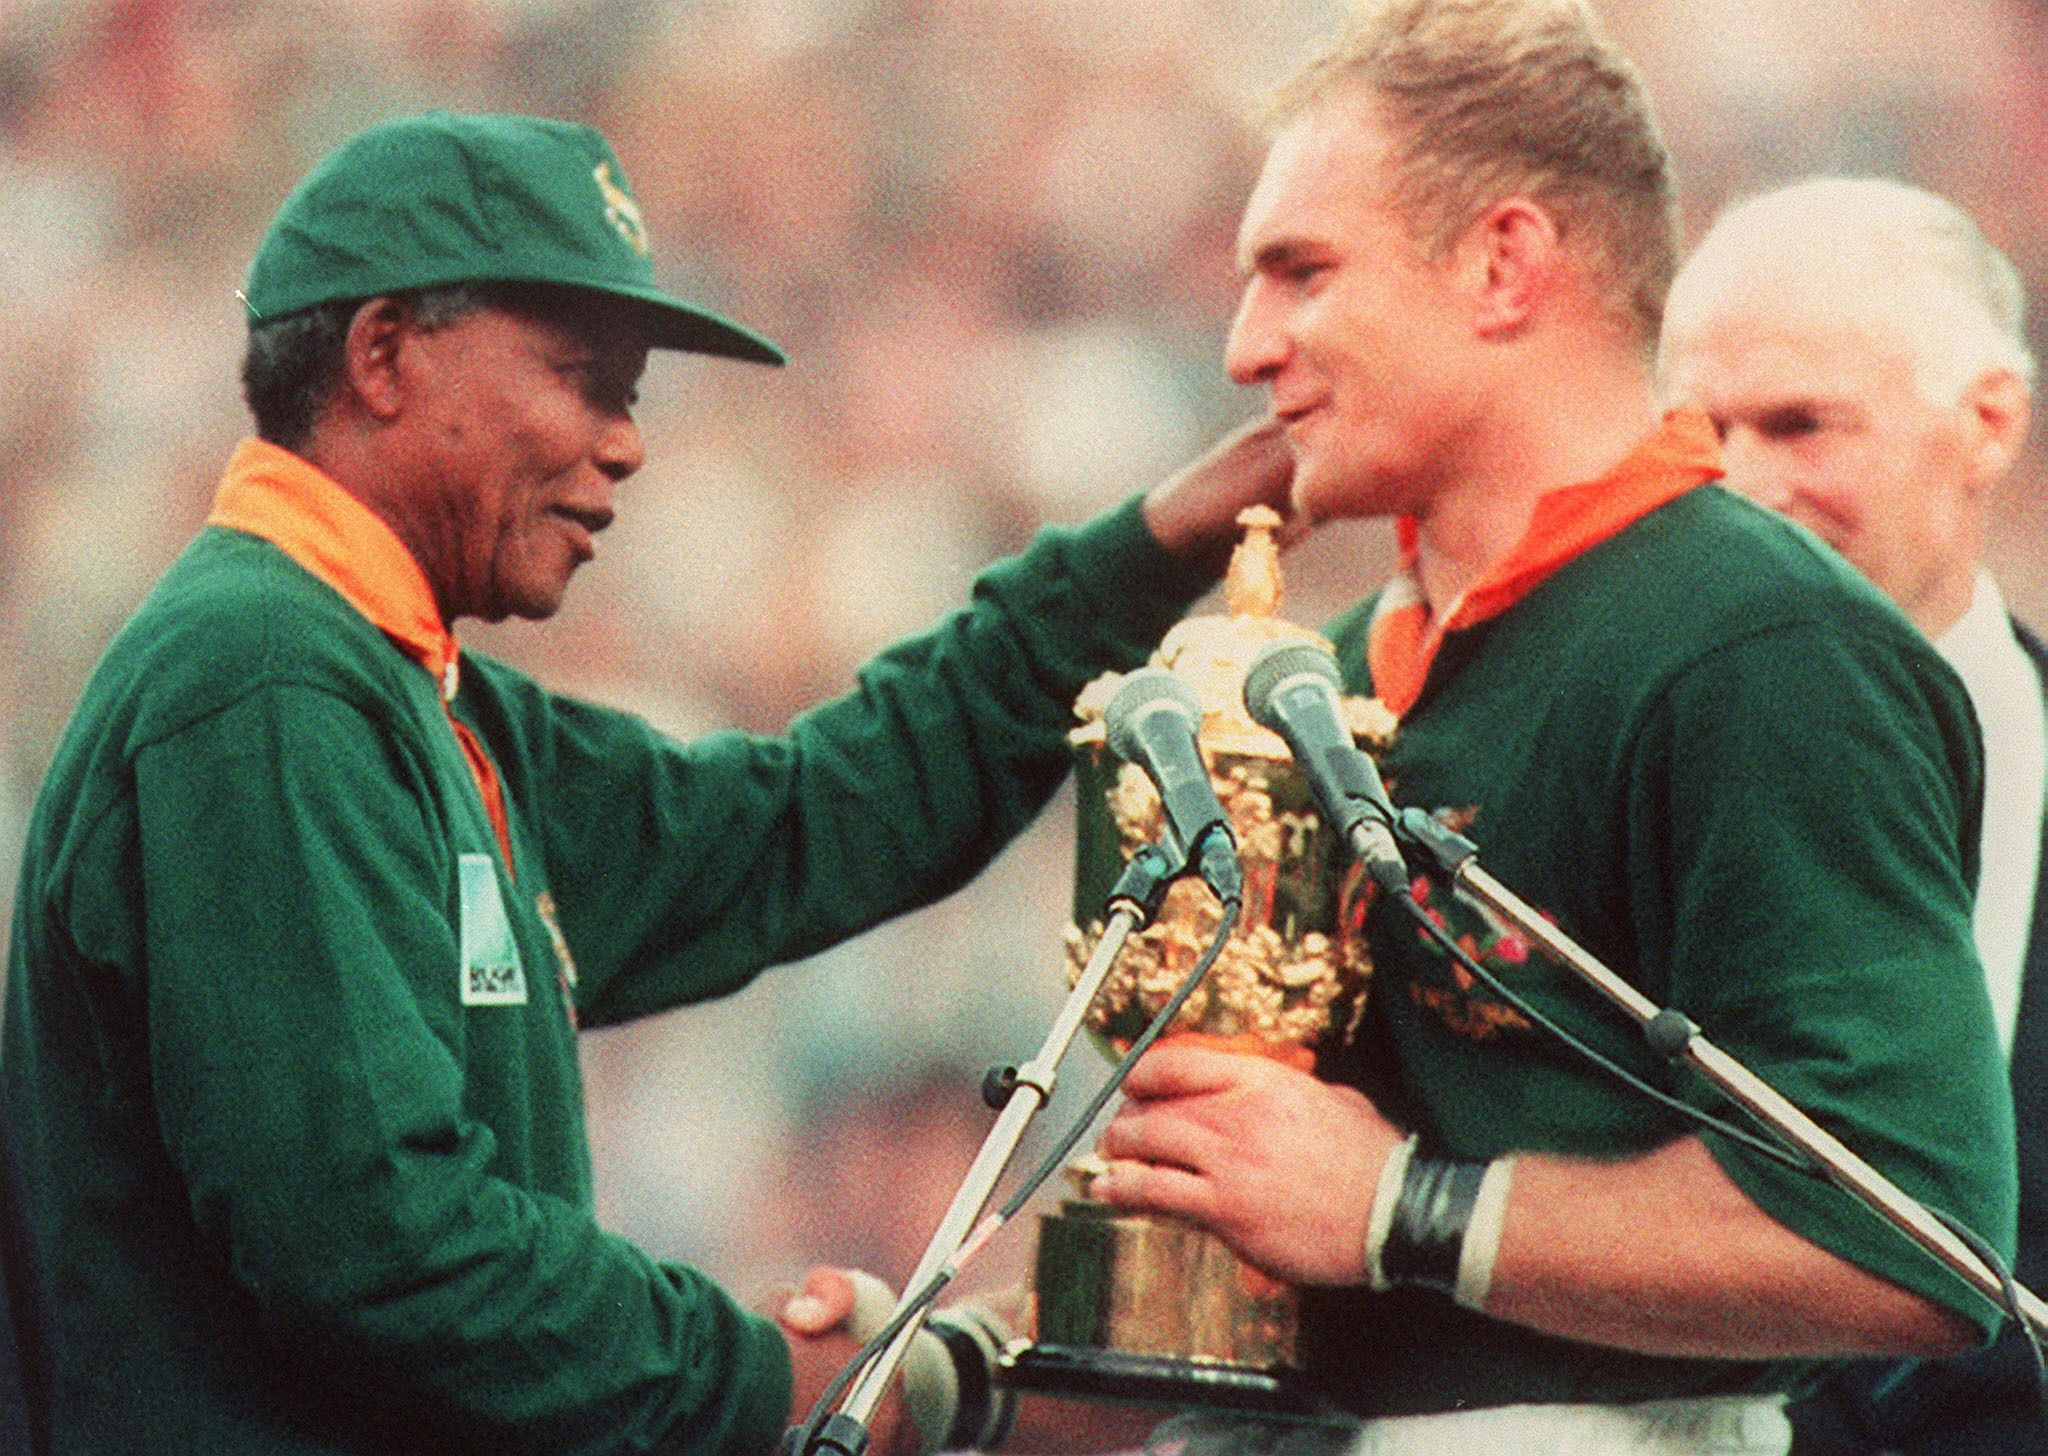 This Day In History Jun 24 1995 Mandela Cheers On South African Rugby Team South Africa Rugby Springbok Rugby Rugby World Cup